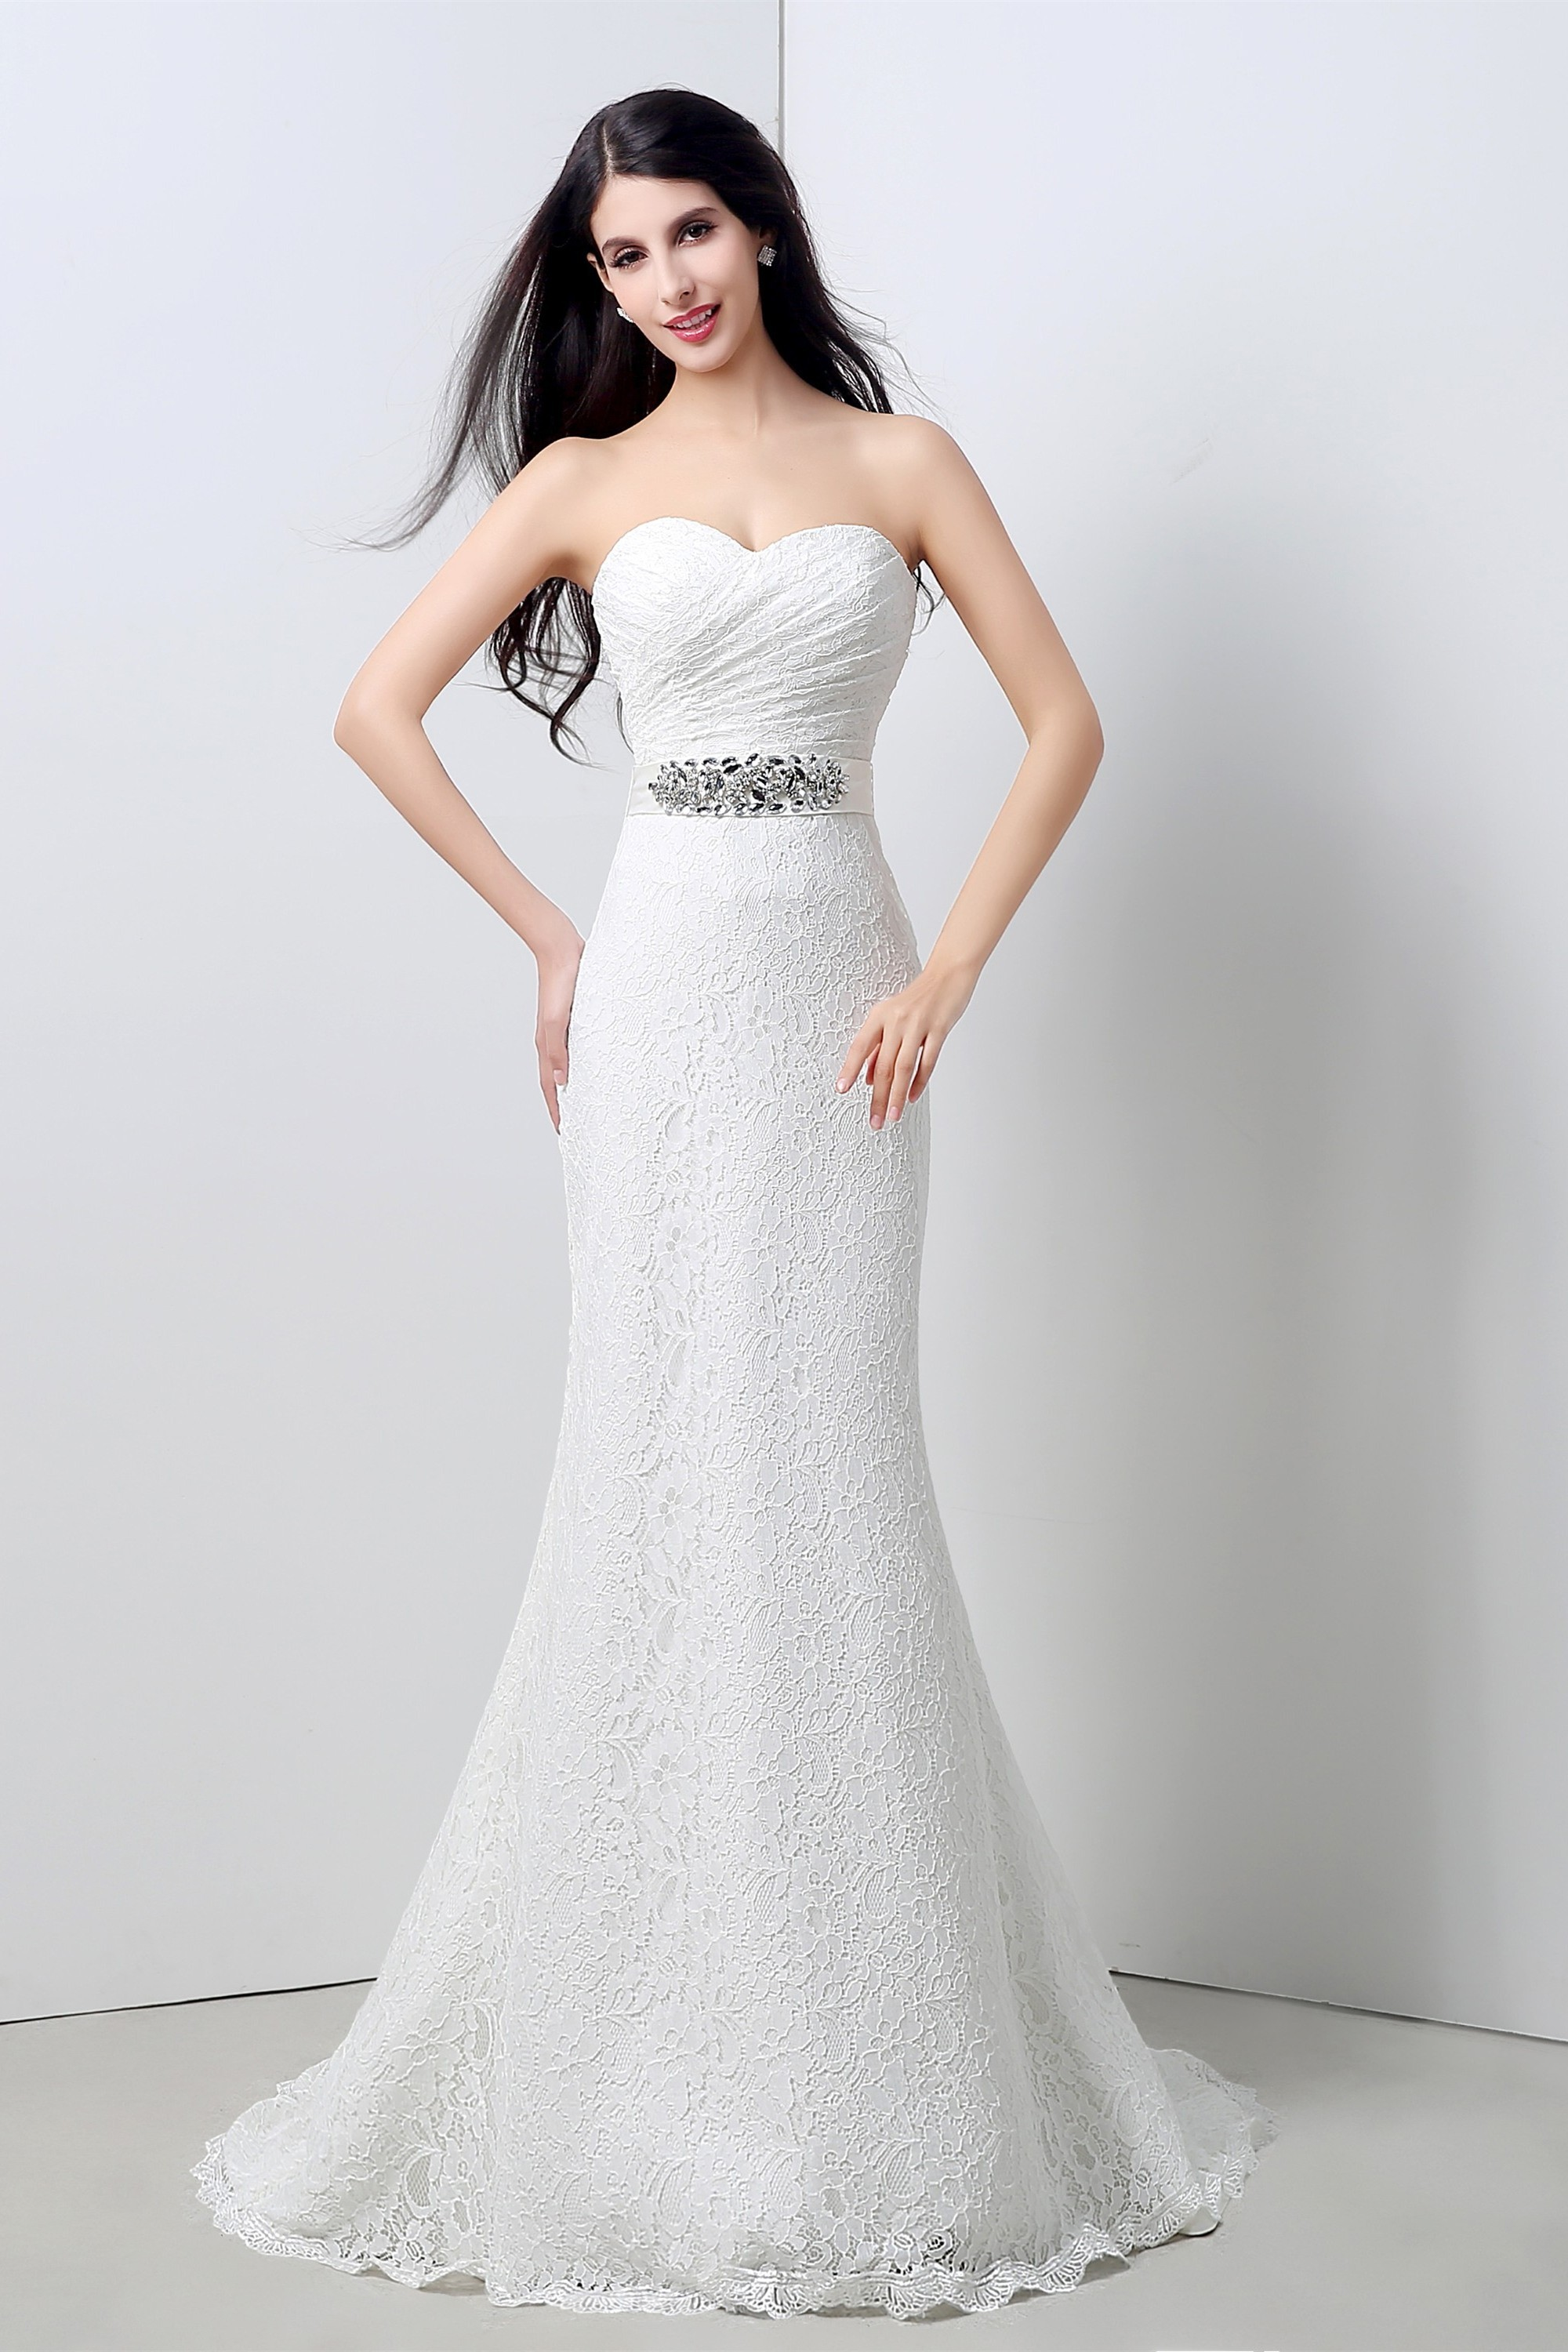 Stunning Mermaid Strapless Corset Back Lace Wedding Dress With Crystals Sash: Lace Mermaid Wedding Dresses With Corset At Reisefeber.org